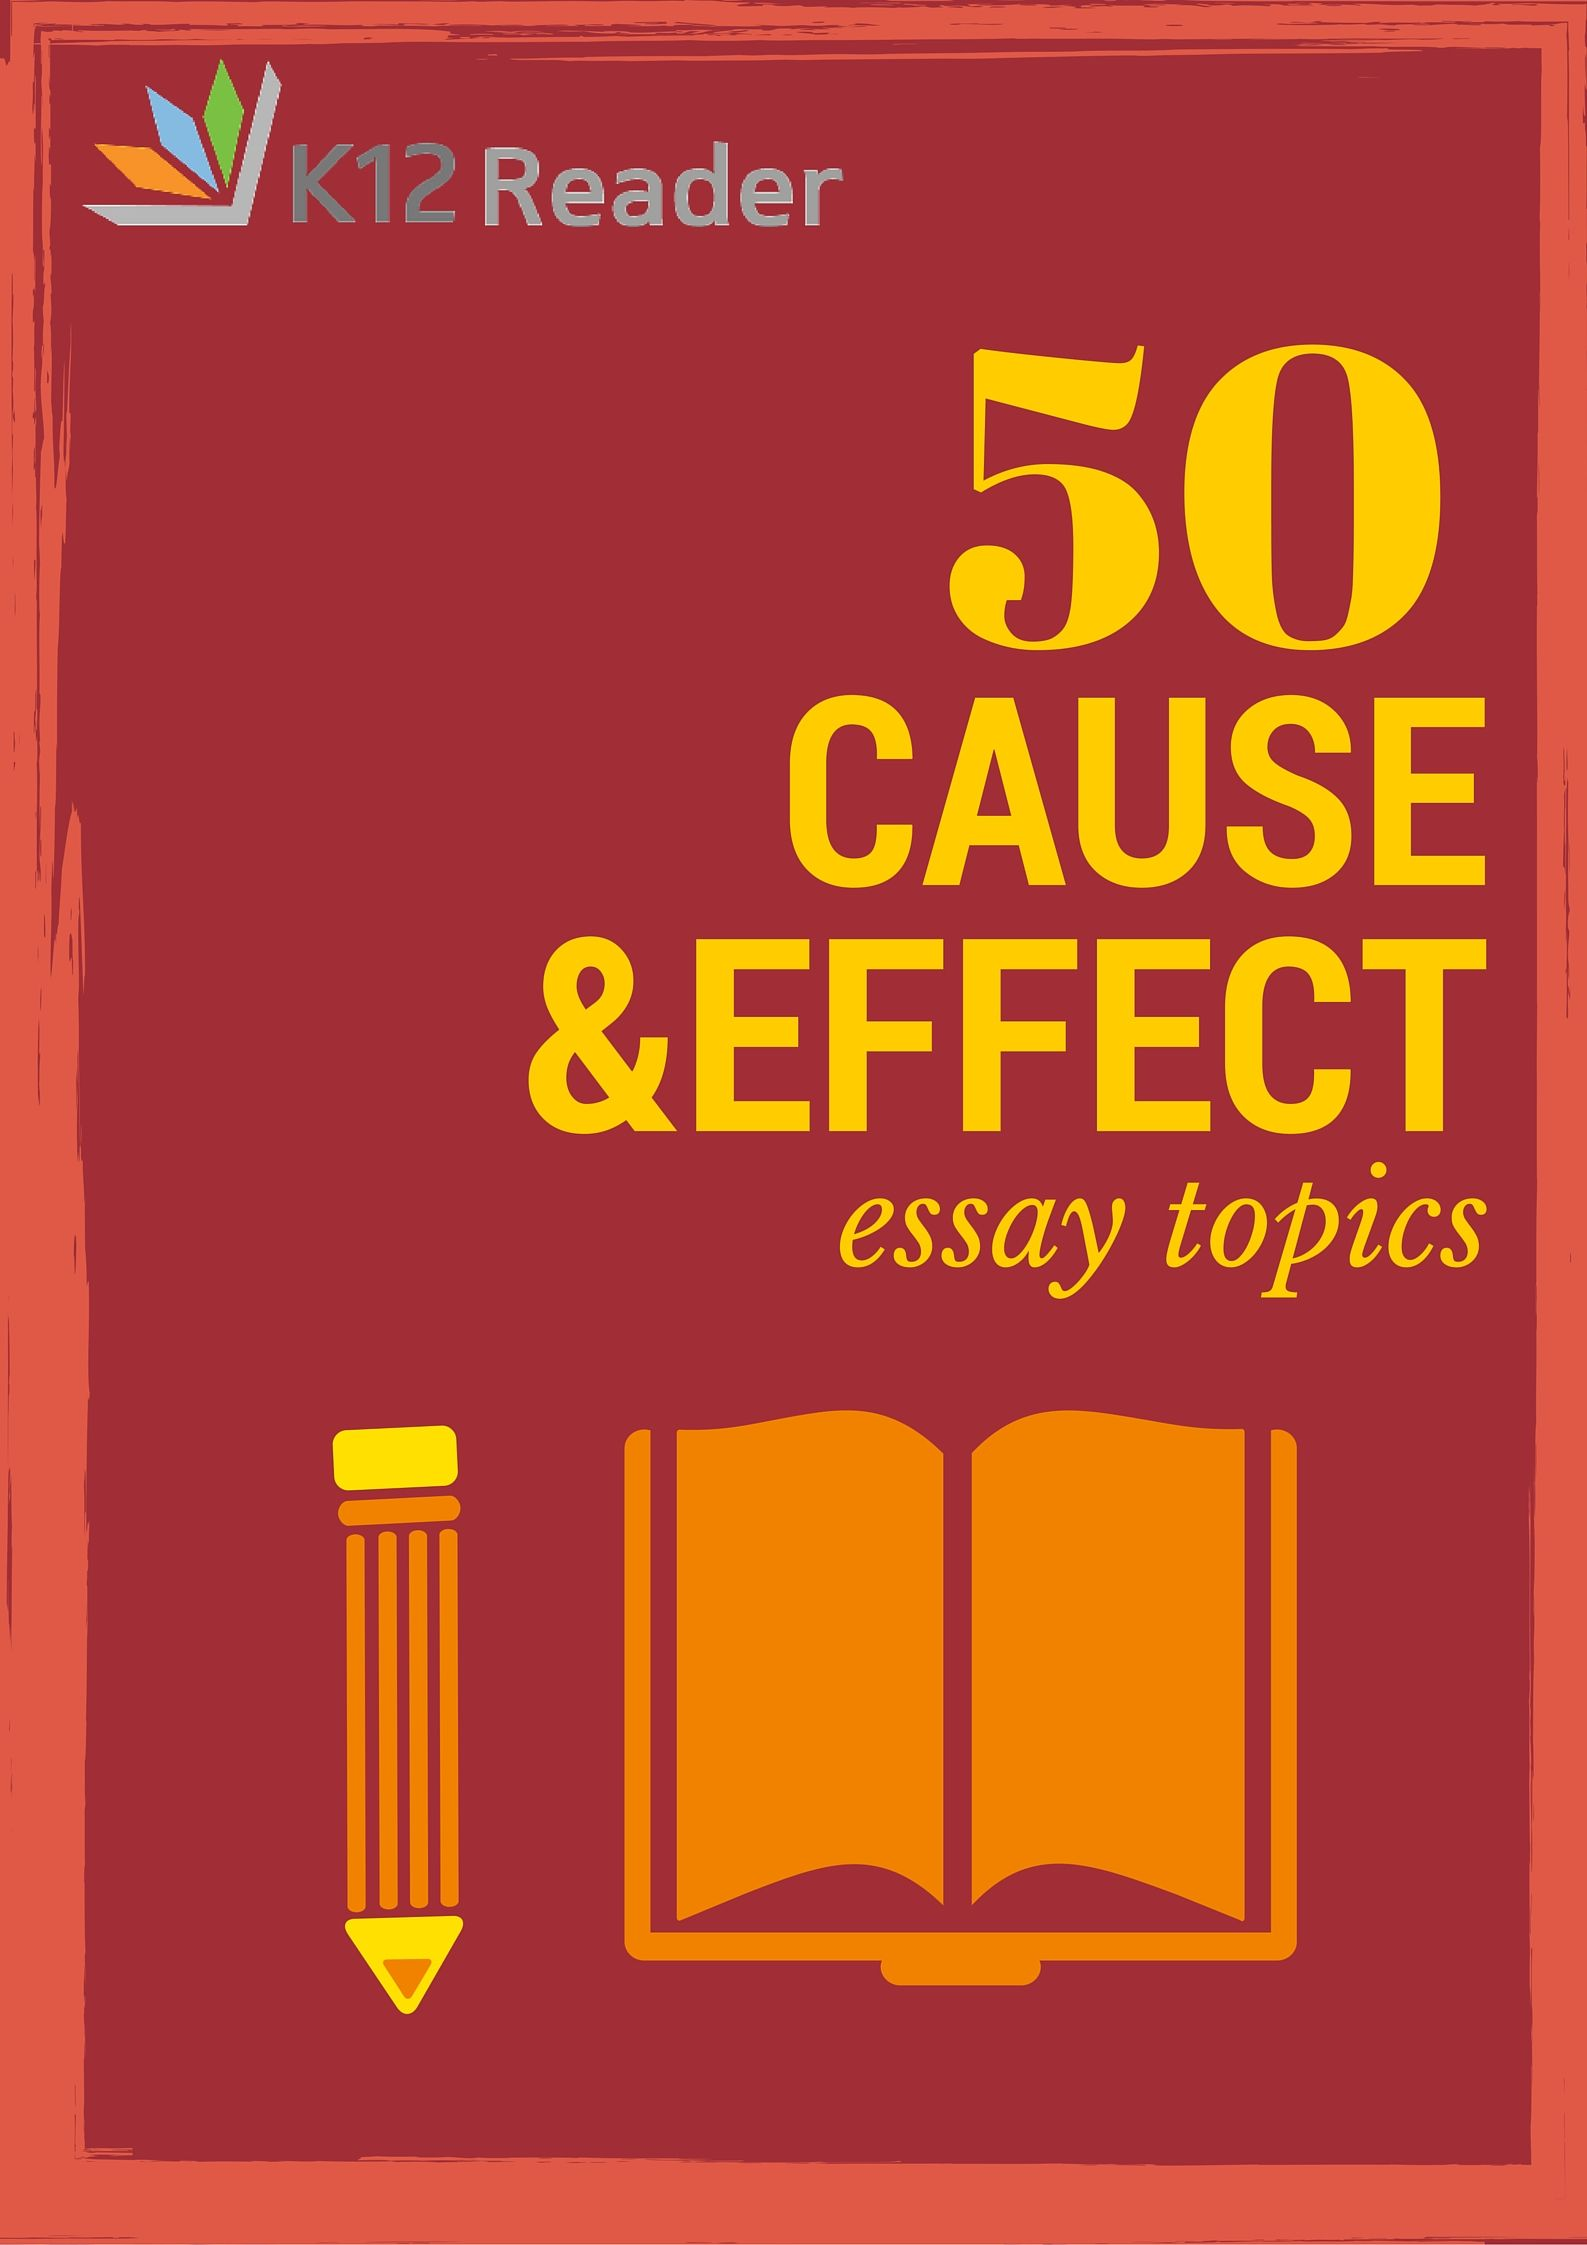 essay on cause and effect topics Are you looking for interesting cause and effect essay topics we have a list of 200 topics to get you started we also offer a few examples as guides.